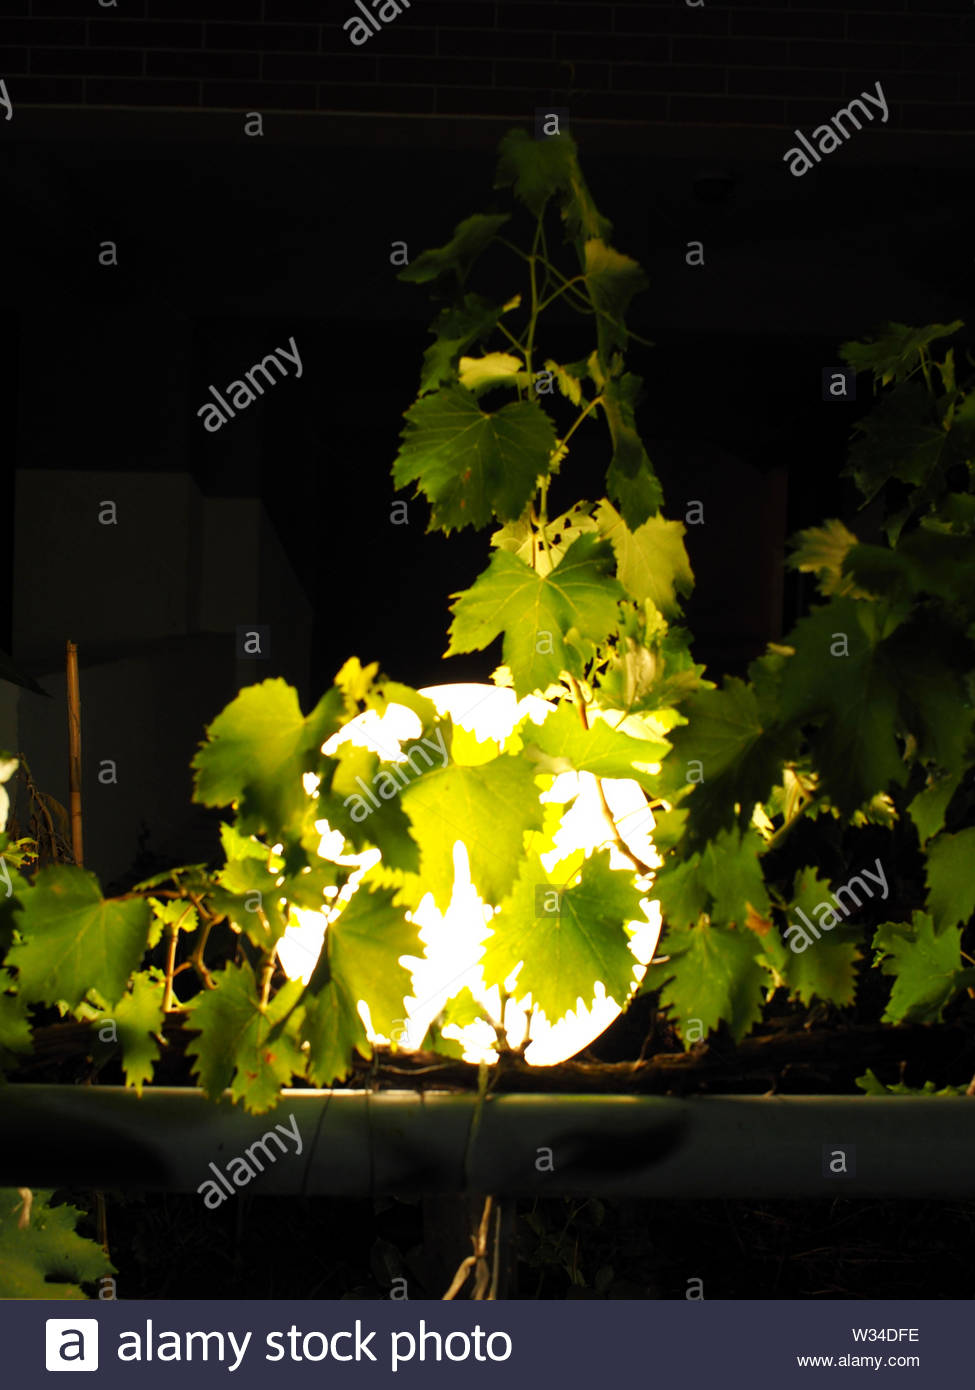 abstract view of a grape plant at night - Stock Image